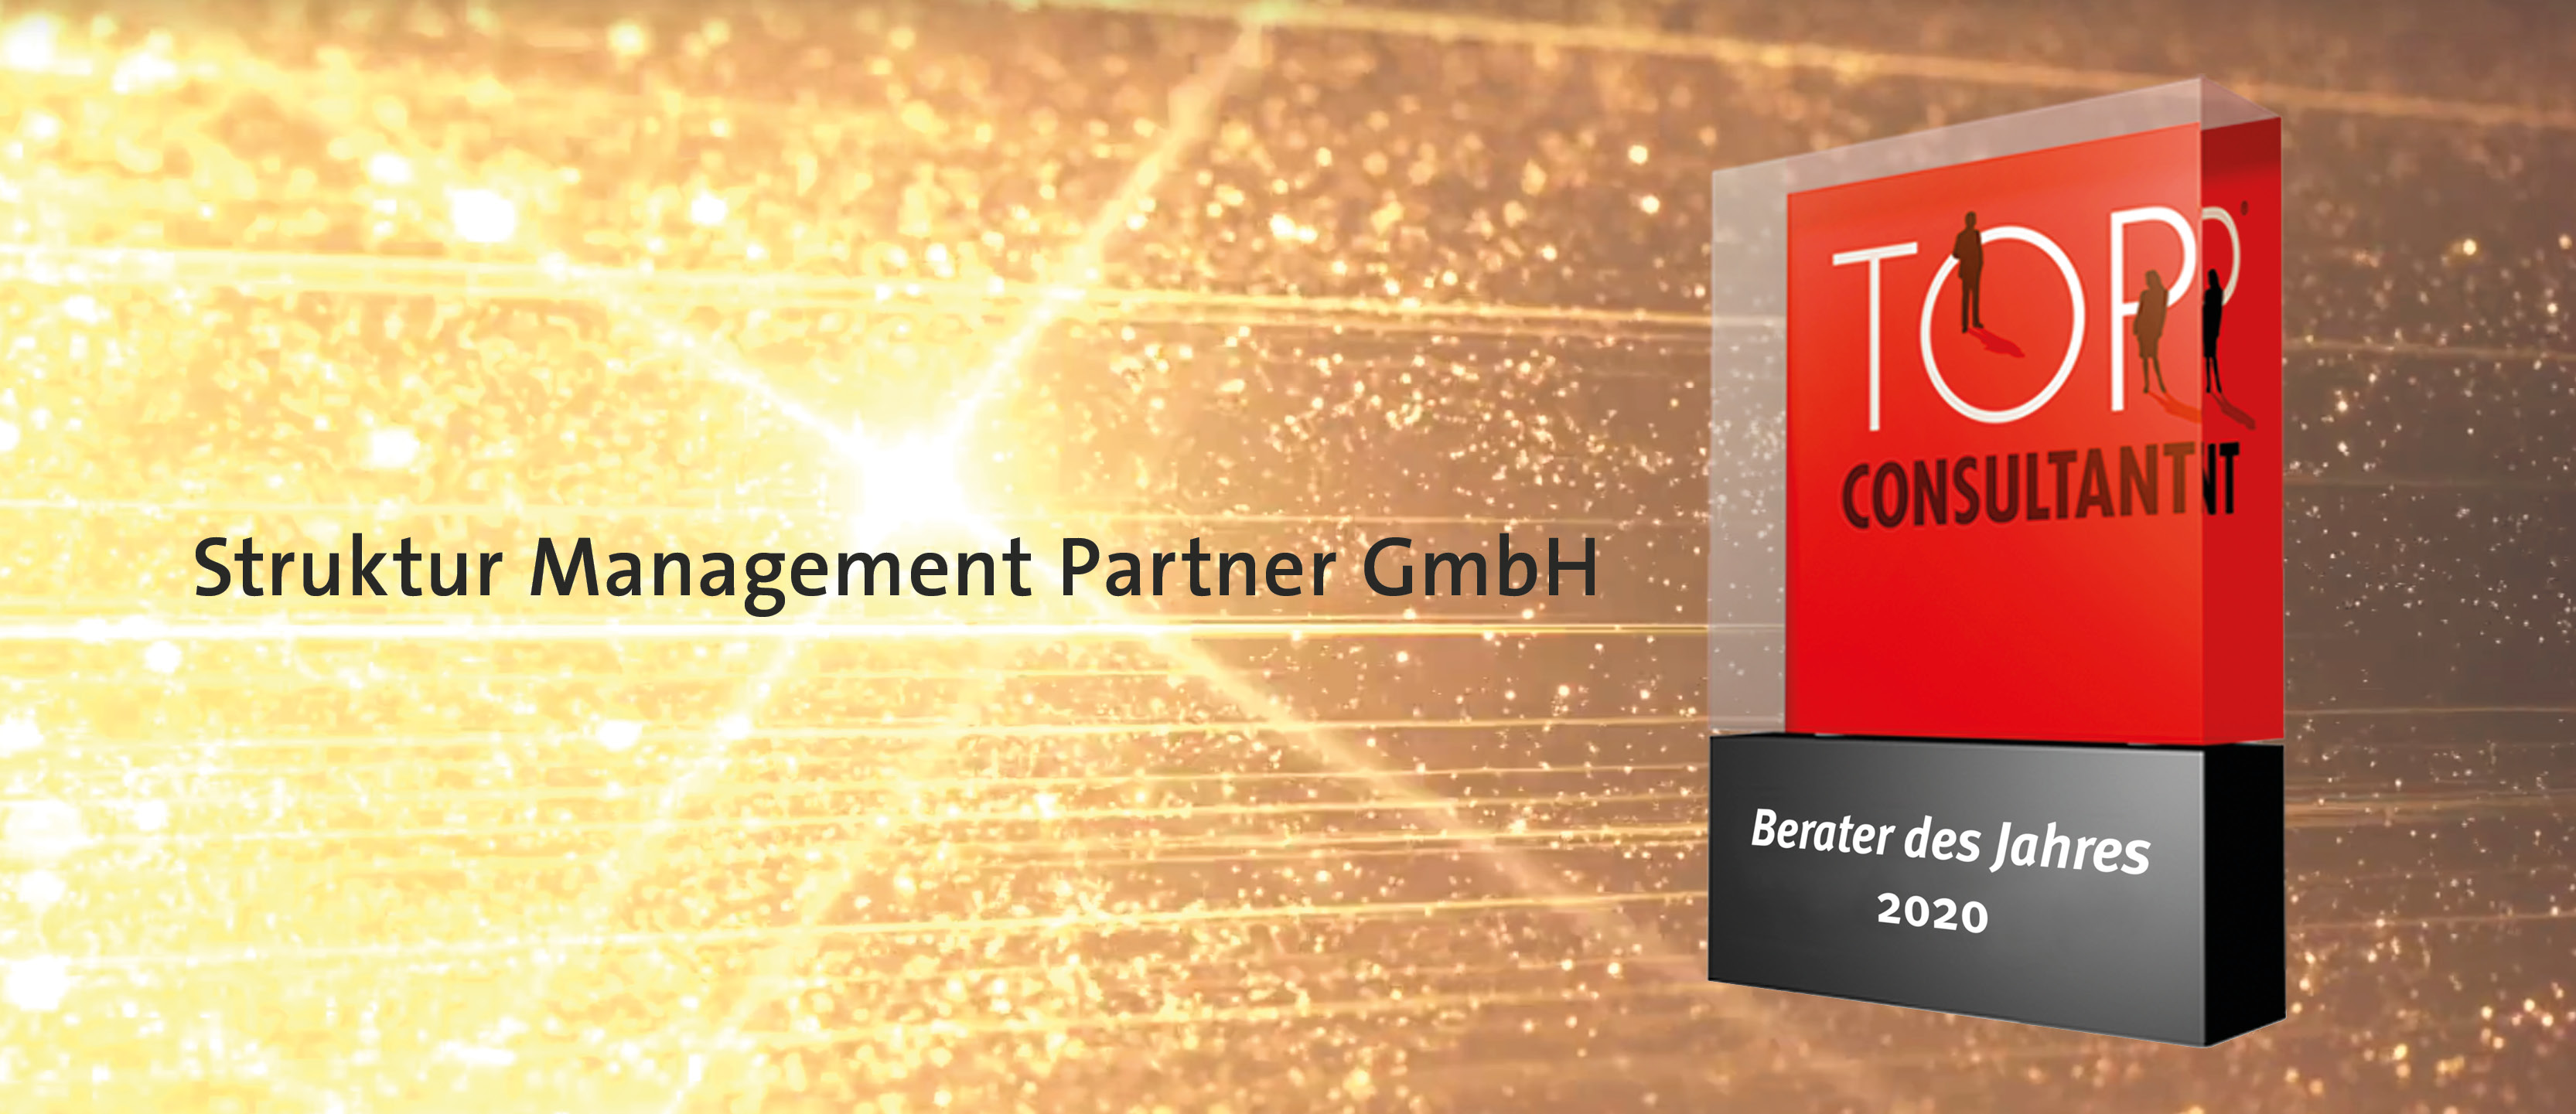 Strukut Management Partner